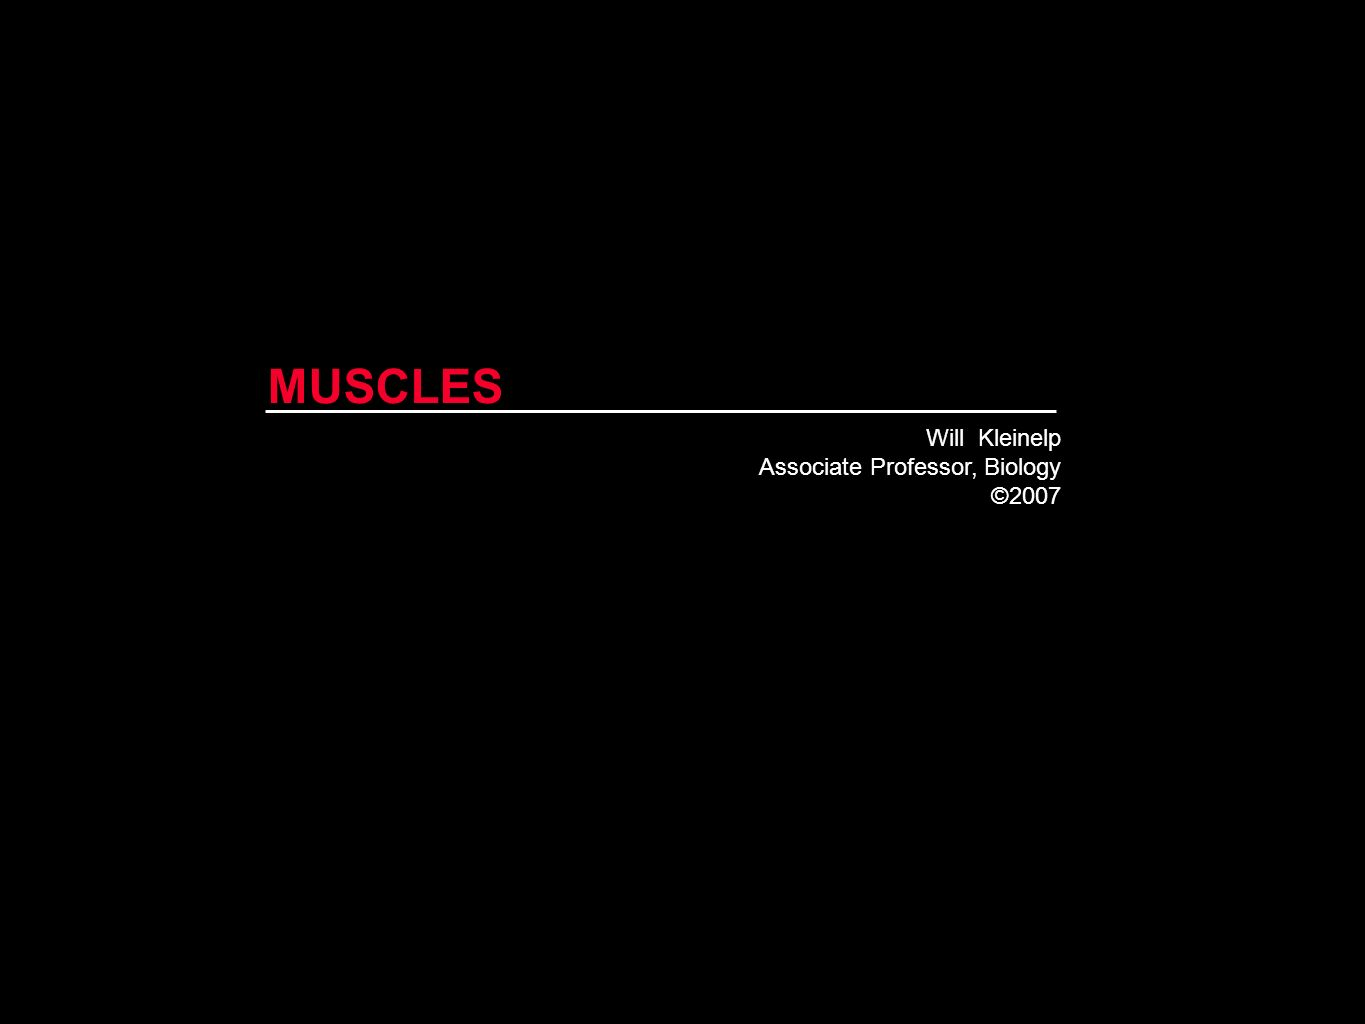 MUSCLES Will Kleinelp Associate Professor, Biology ©2007